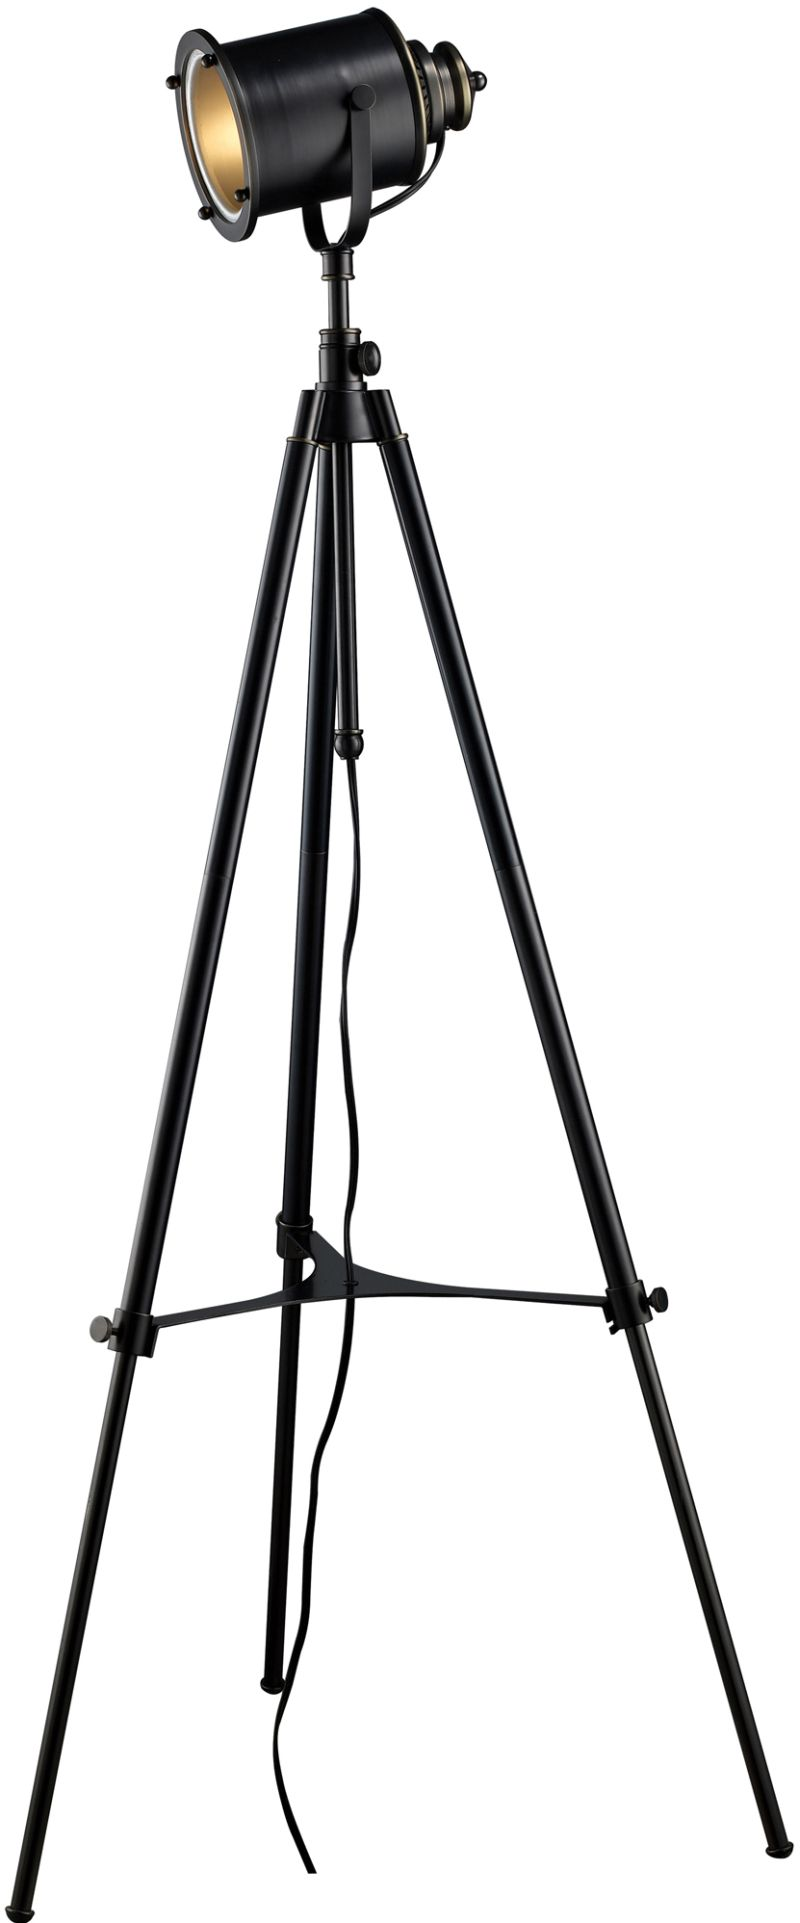 Adjustable Tripod Movie Studio Floor Lamp - Adjustable Tripod Movie Studio Floor Lamp - Stargate Cinema